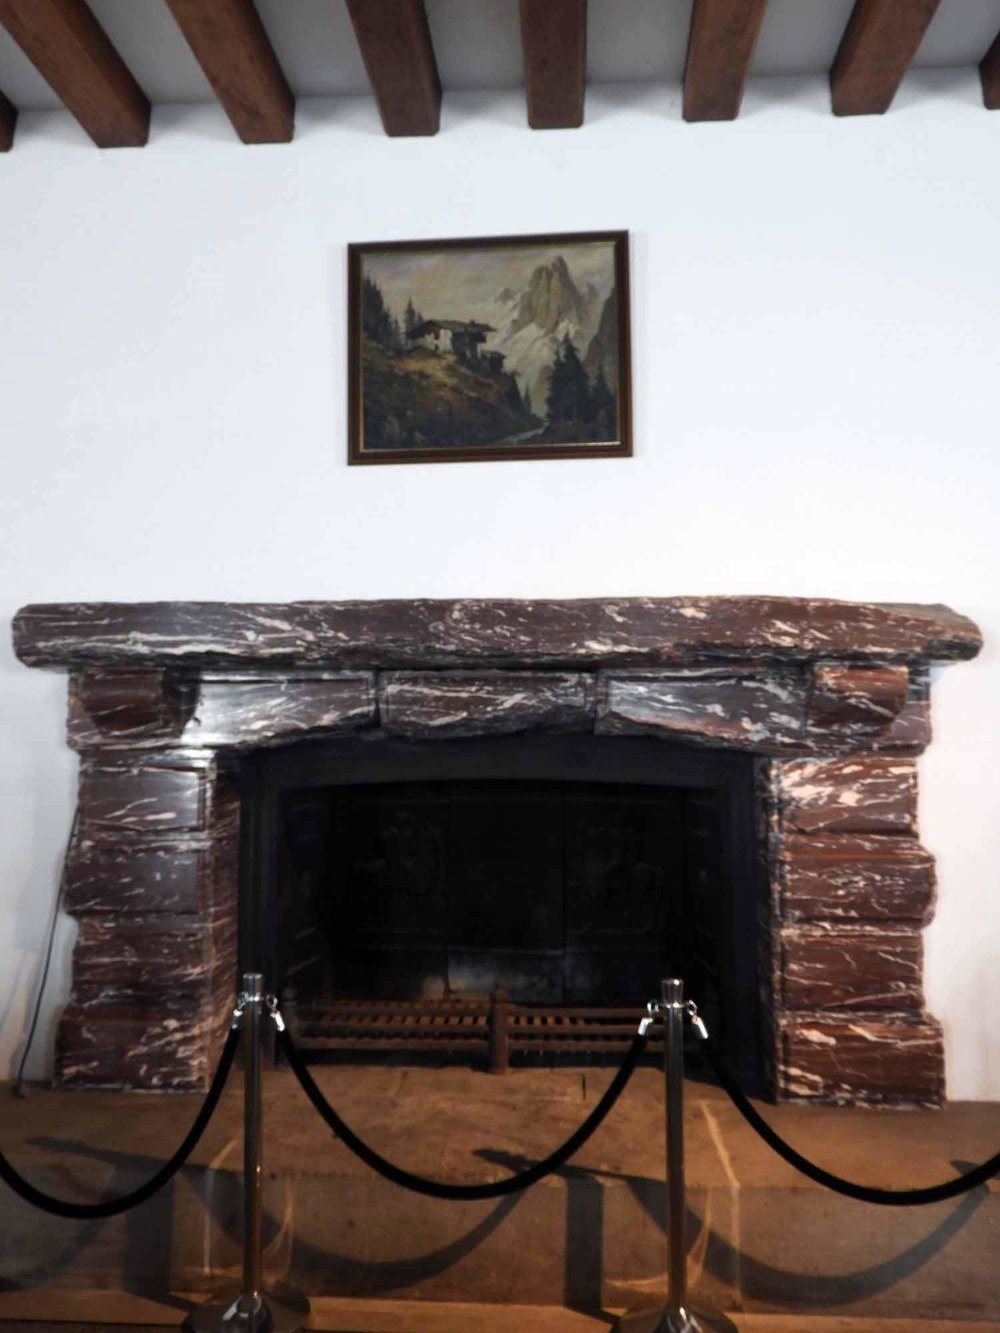 germany-eagles-nest-berchtesgaden-marble-fireplace-nazi-meeting.JPG